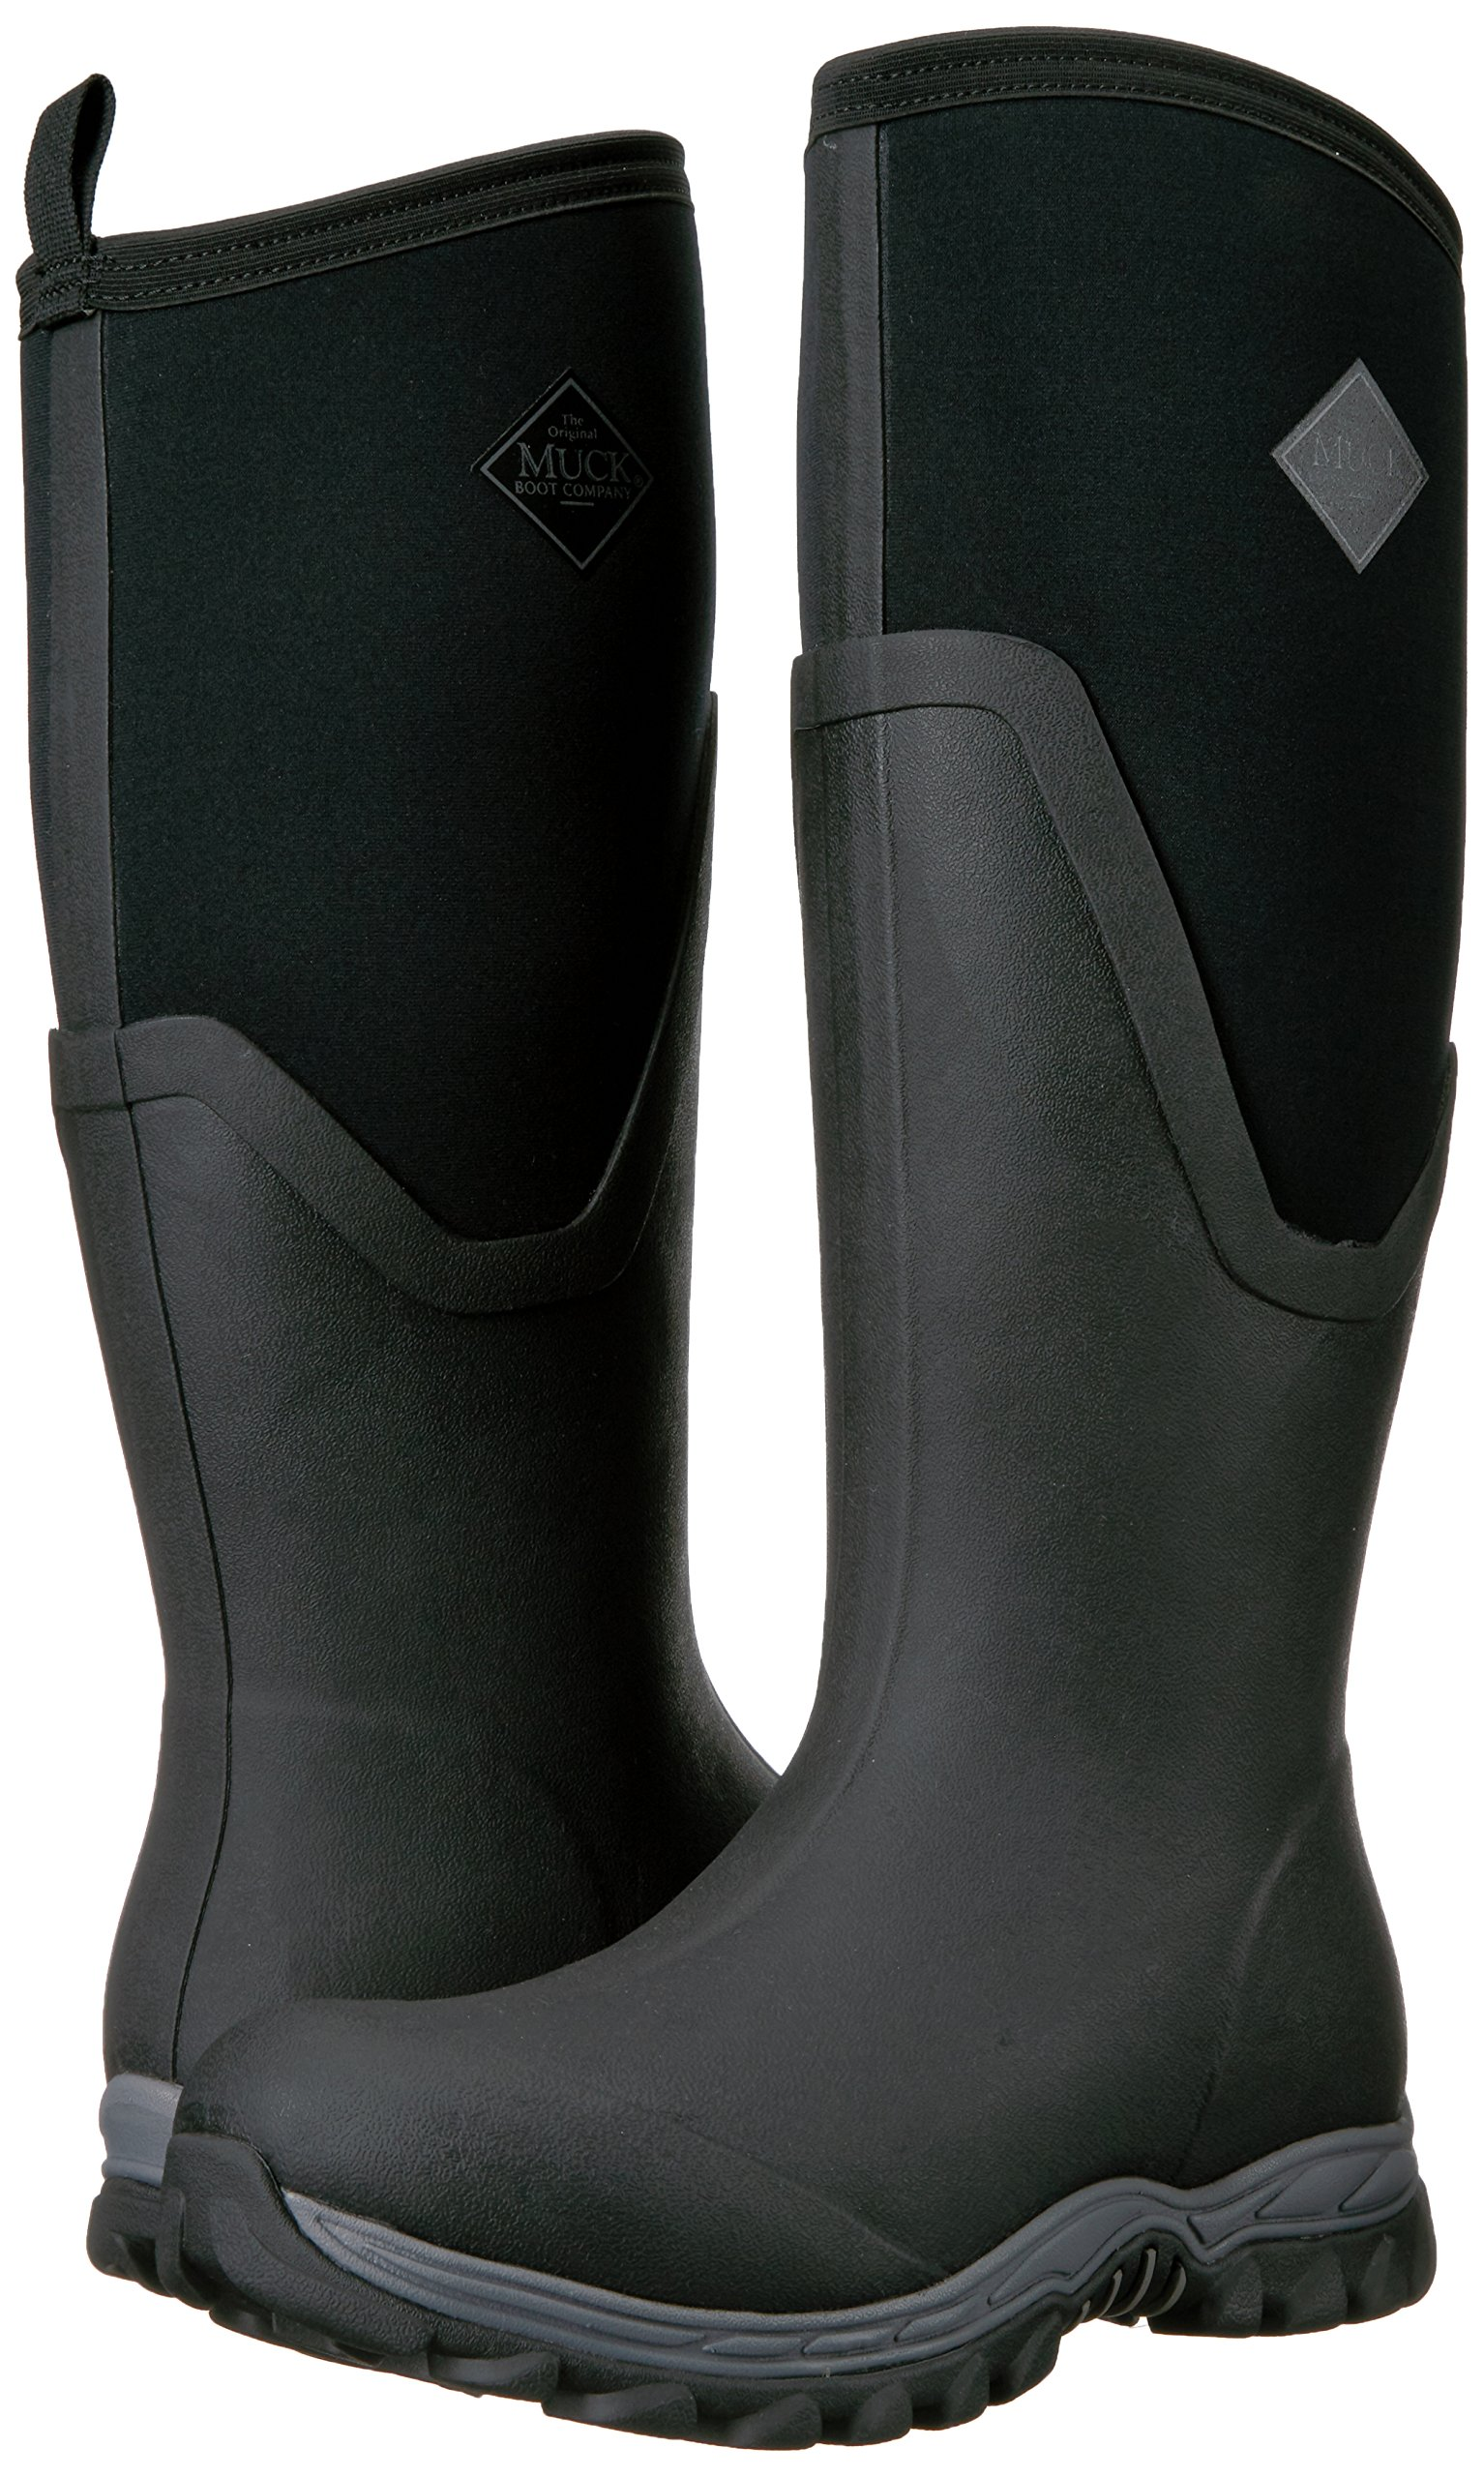 Muck Boot Women's Arctic Sport II Tall Snow Boot, Black, 7 US/7 M US by Muck Boot (Image #6)